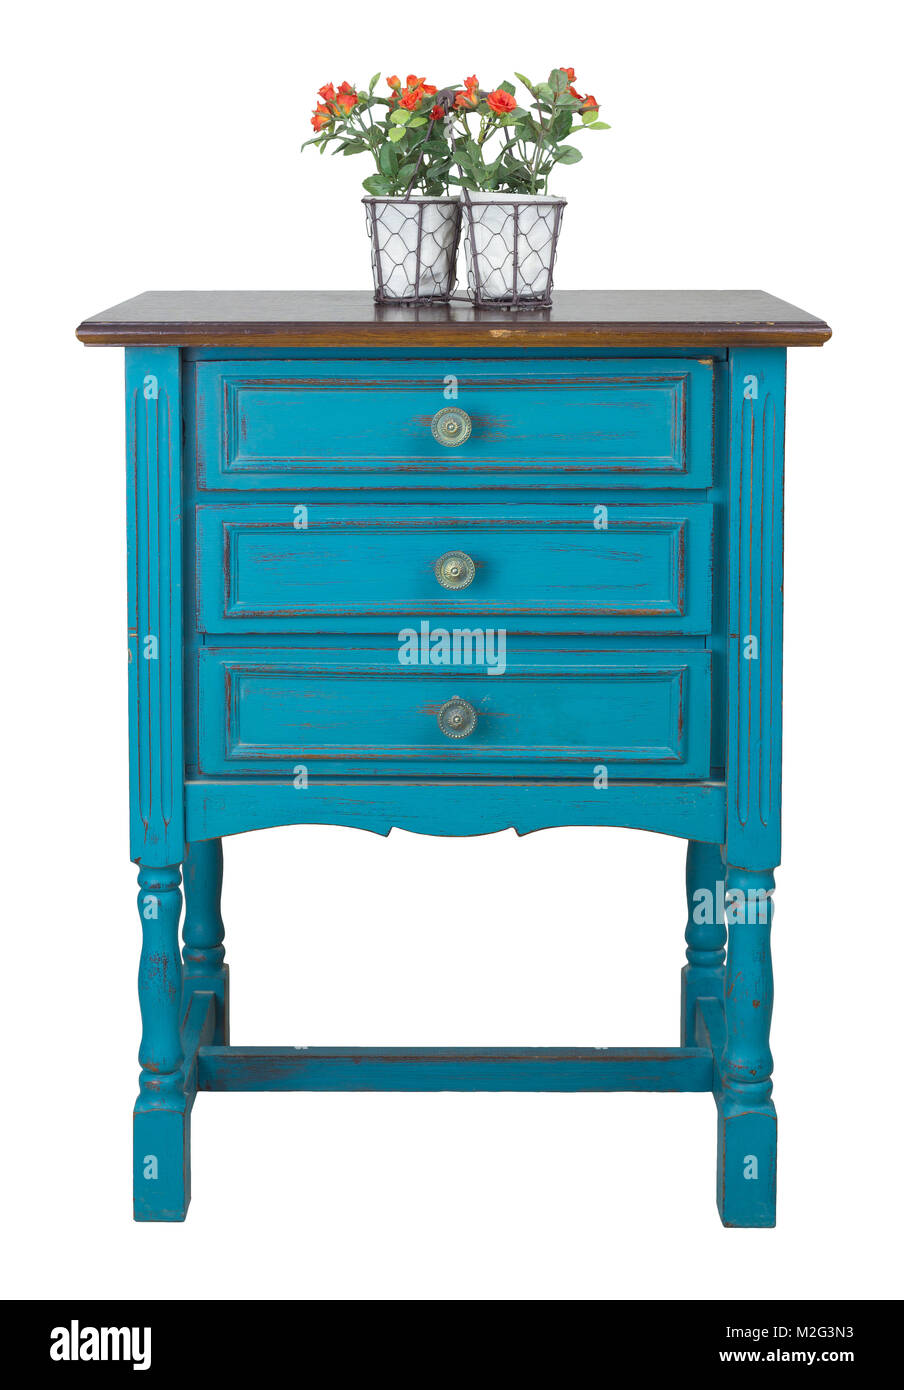 Vintage Furniture - Vintage turquoise commode (Chest of Drawers) with 3 drawers with brass fittings and flower planter - Stock Image